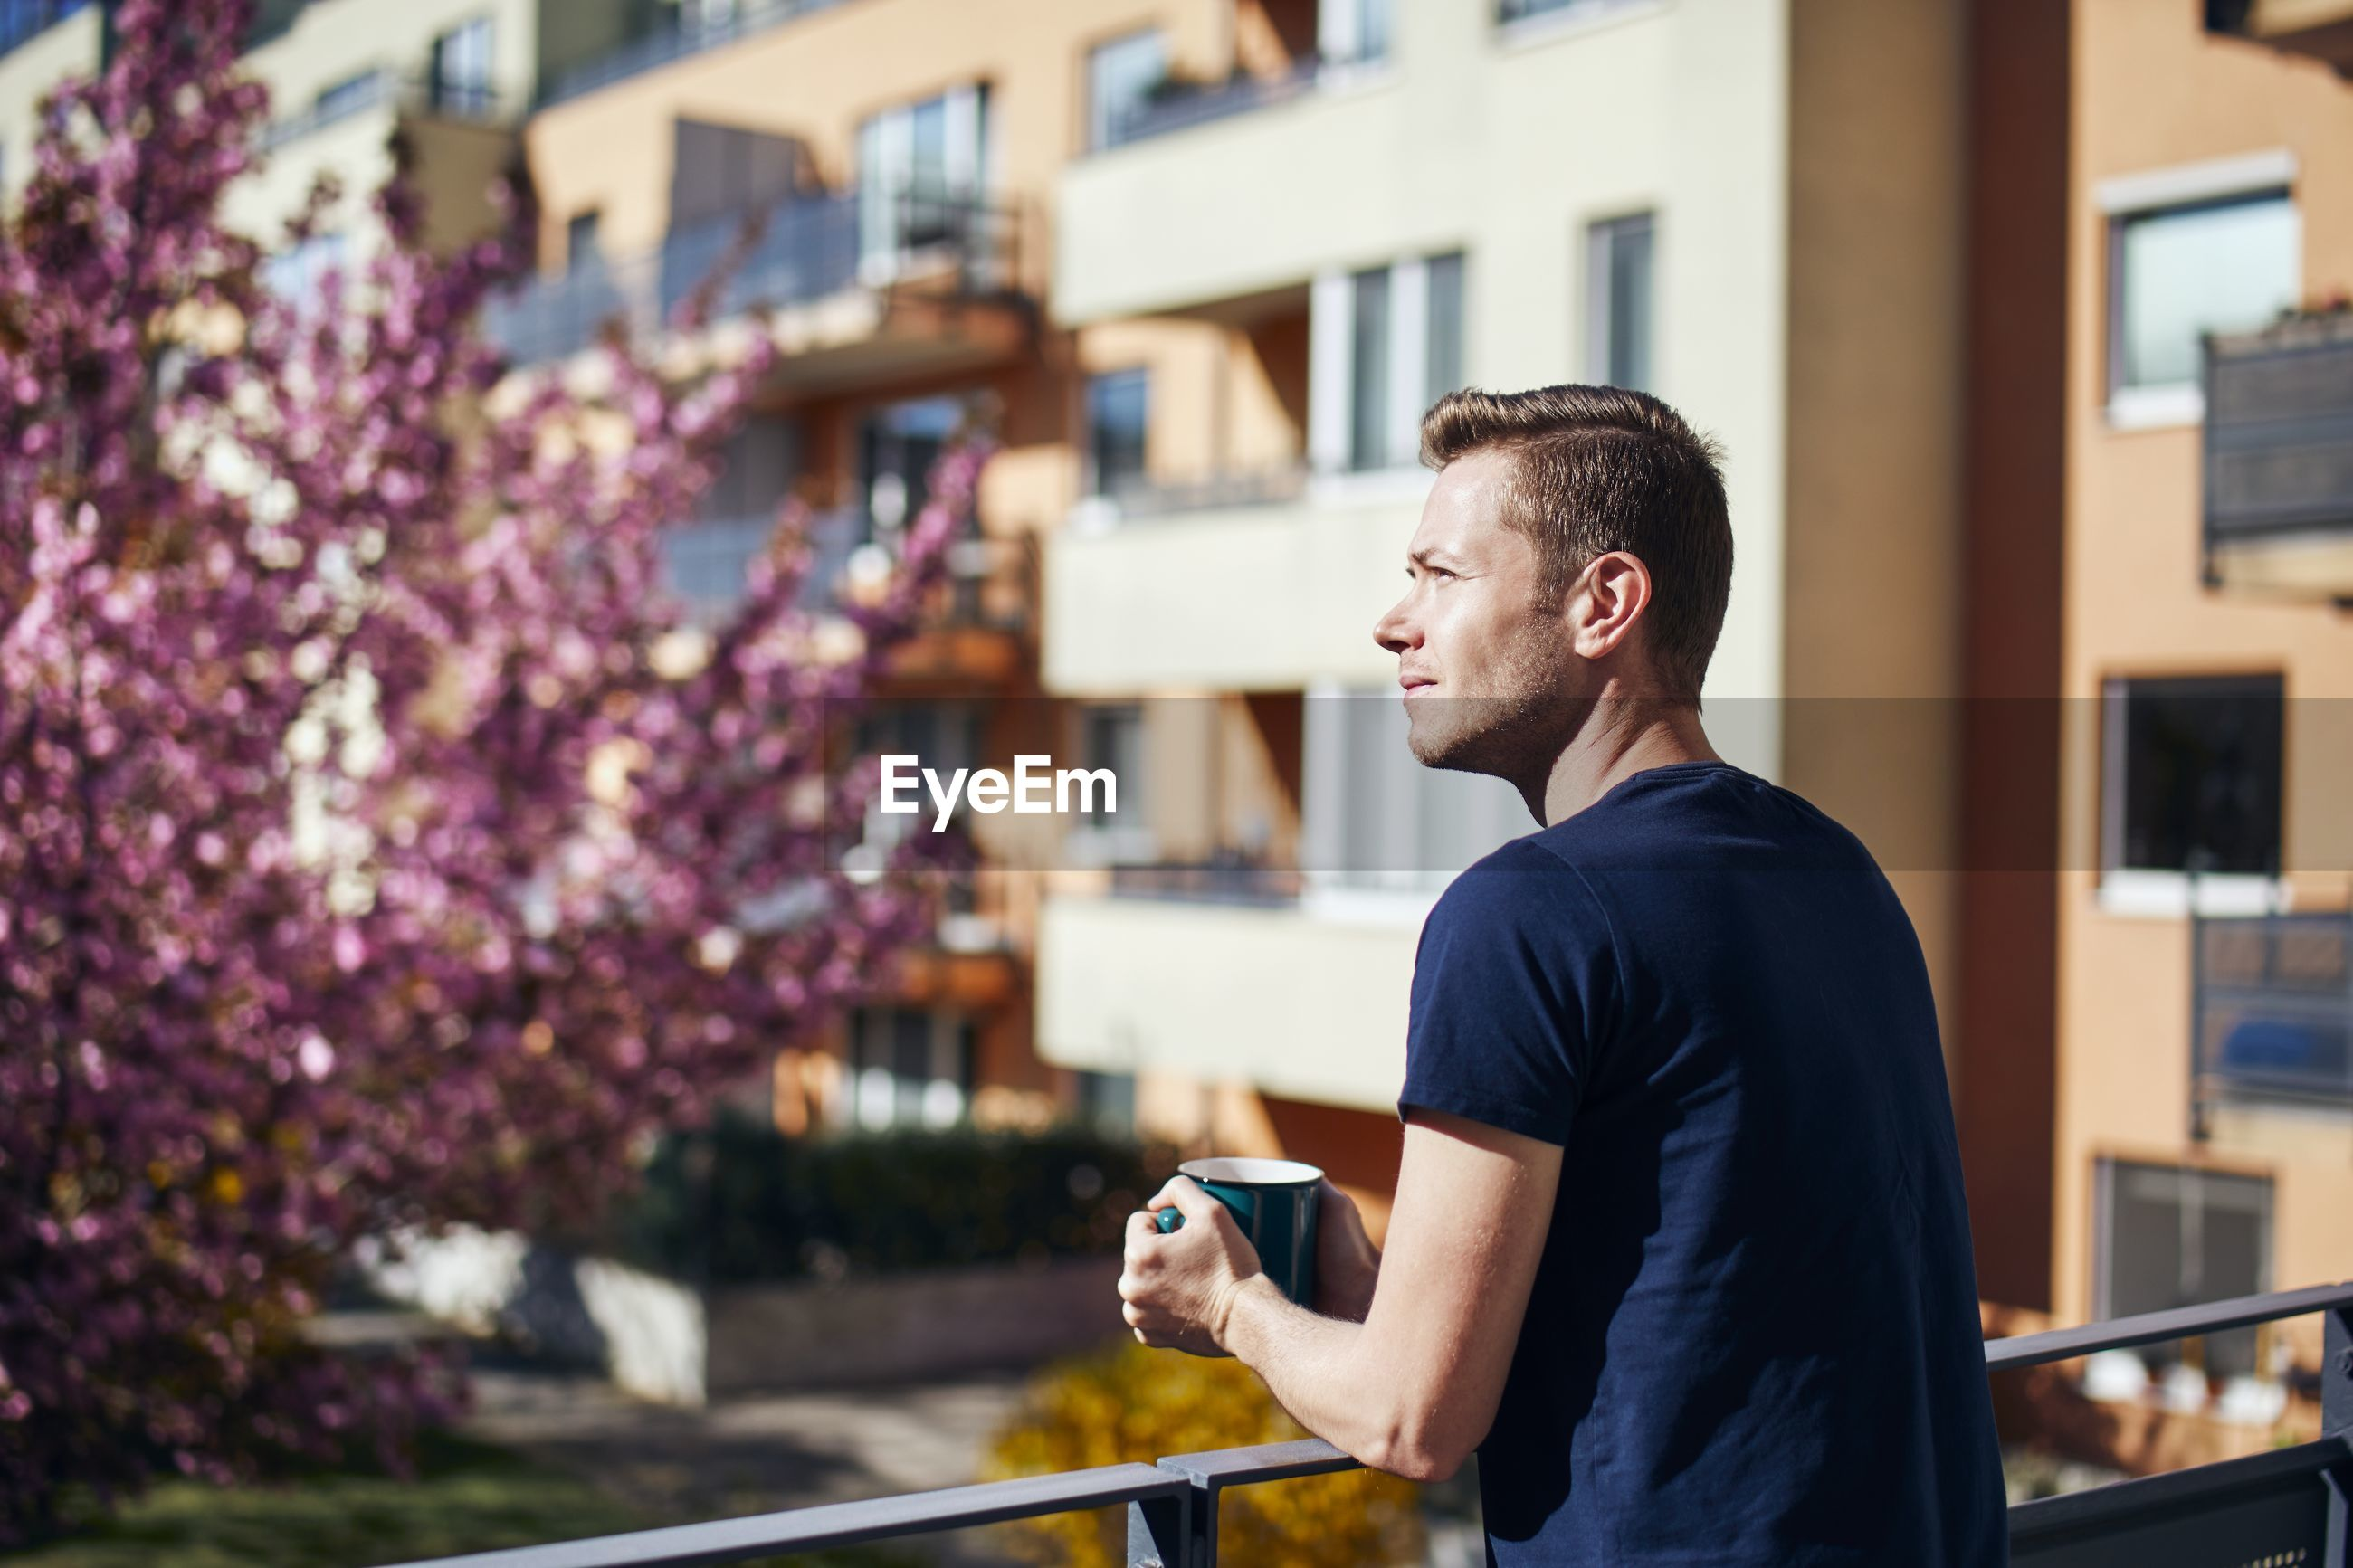 Man having coffee while standing at balcony